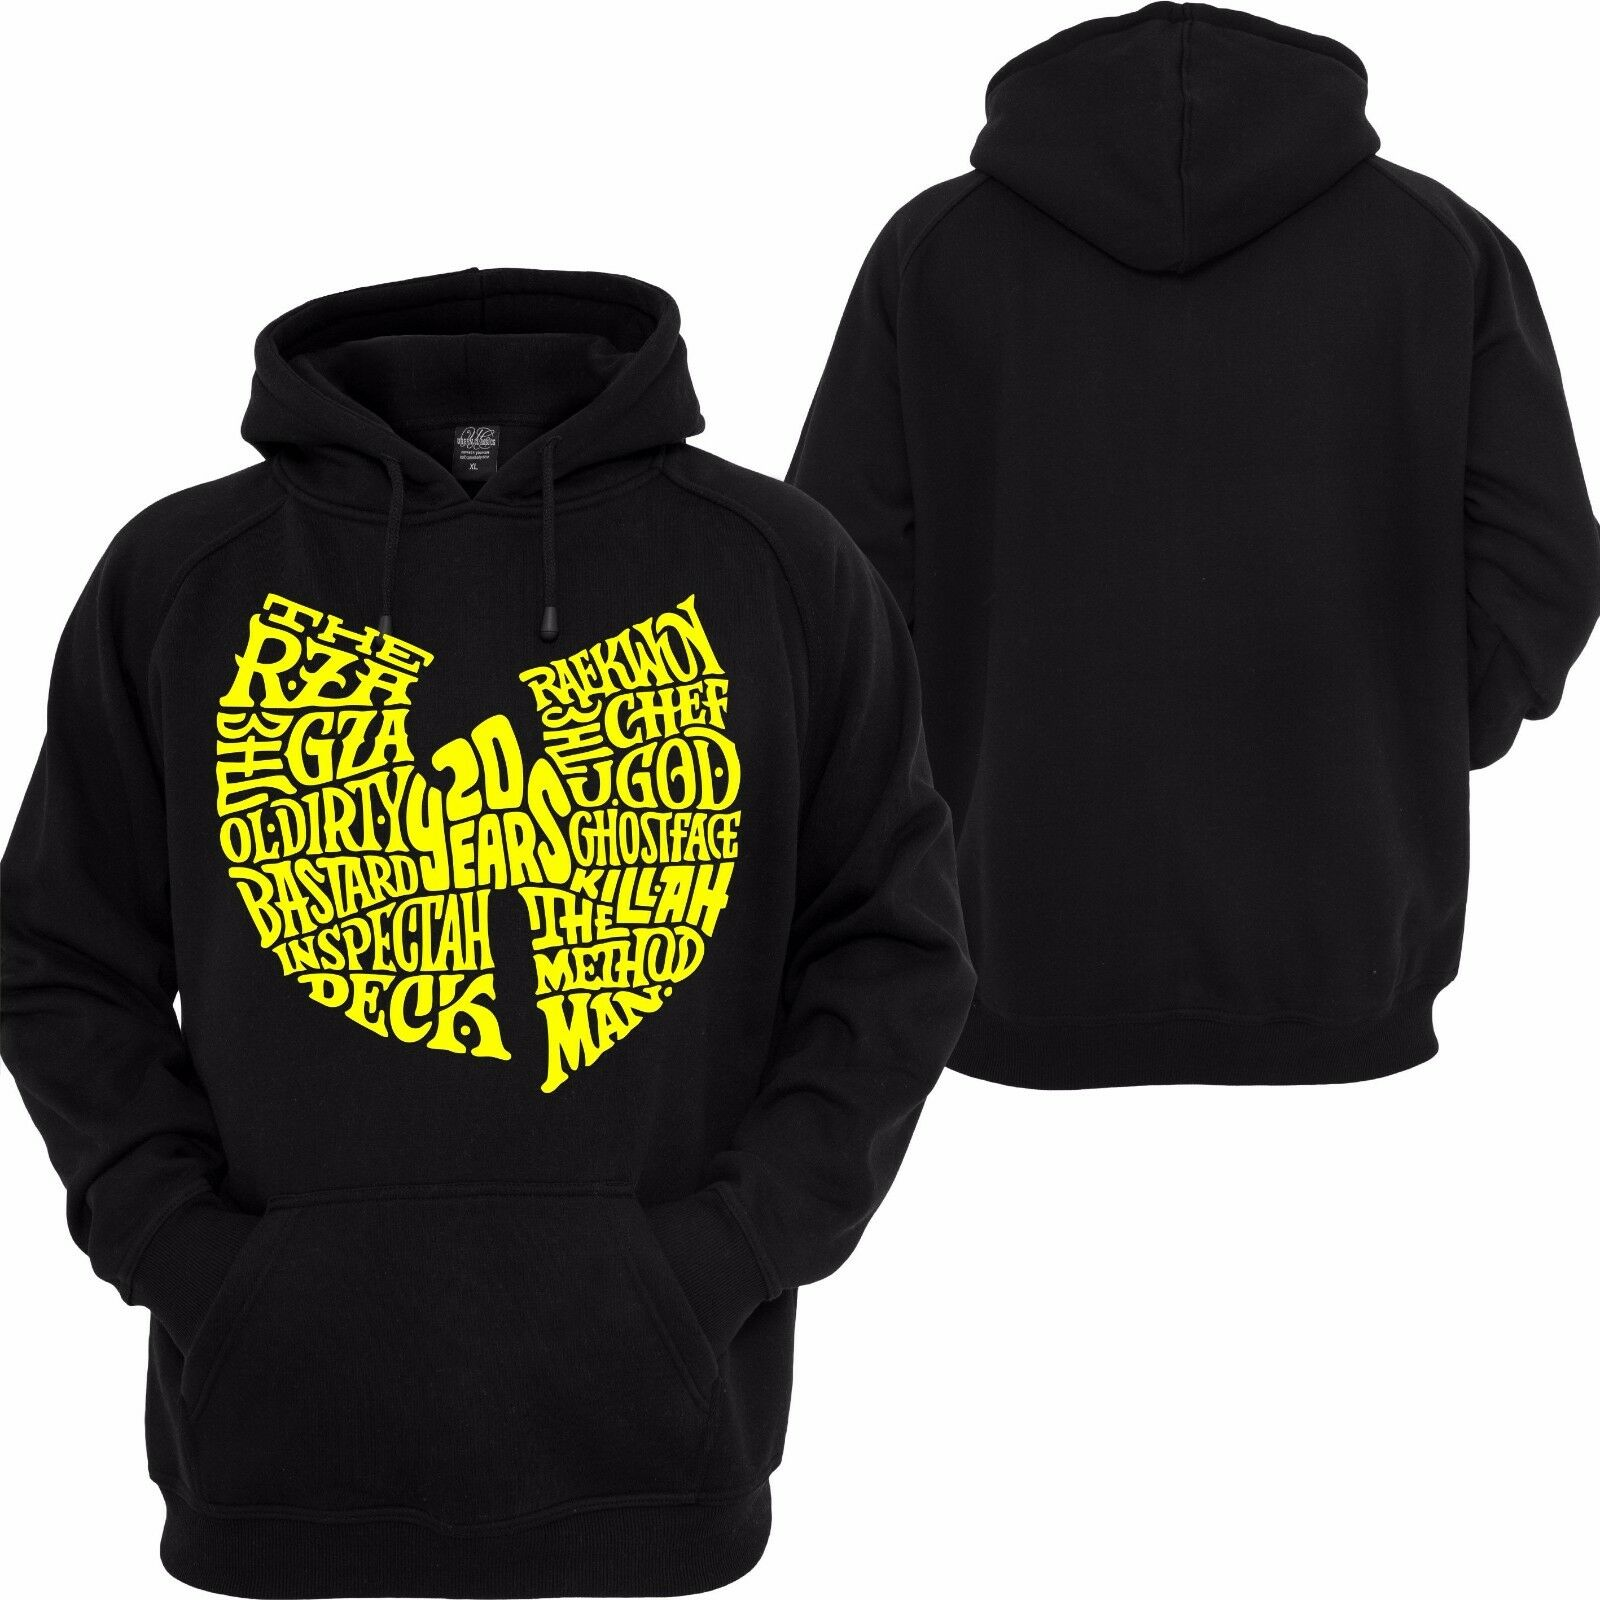 Wu Tang Clan Inspired Hip Hop Rap Music Summer Unisex Sweatshirt Jumper S-3XL